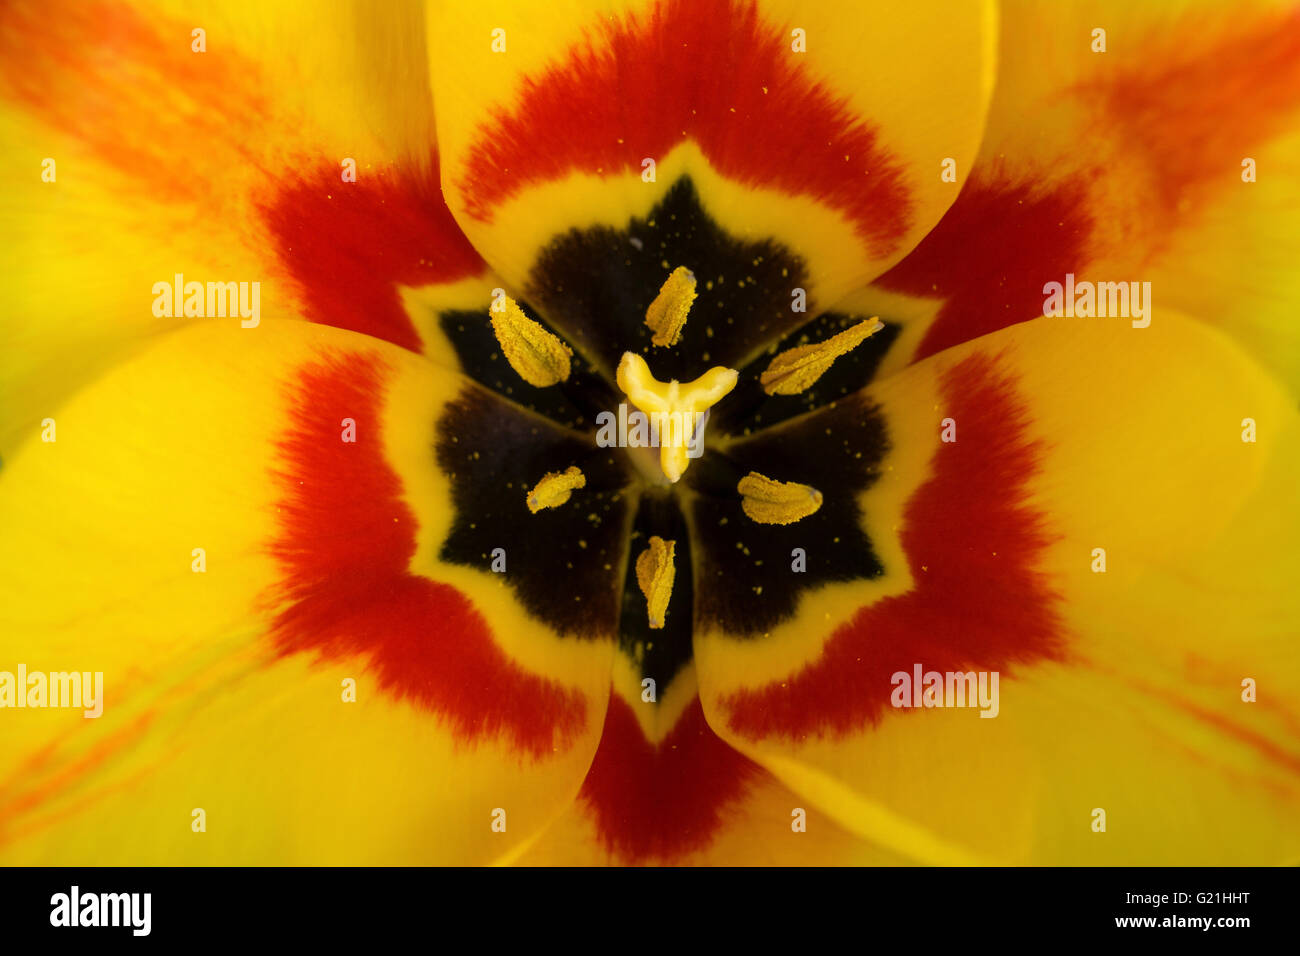 Yellow-red tulip (Tulipa), stamp and stamens, Close, Baden-Württemberg, Germany - Stock Image